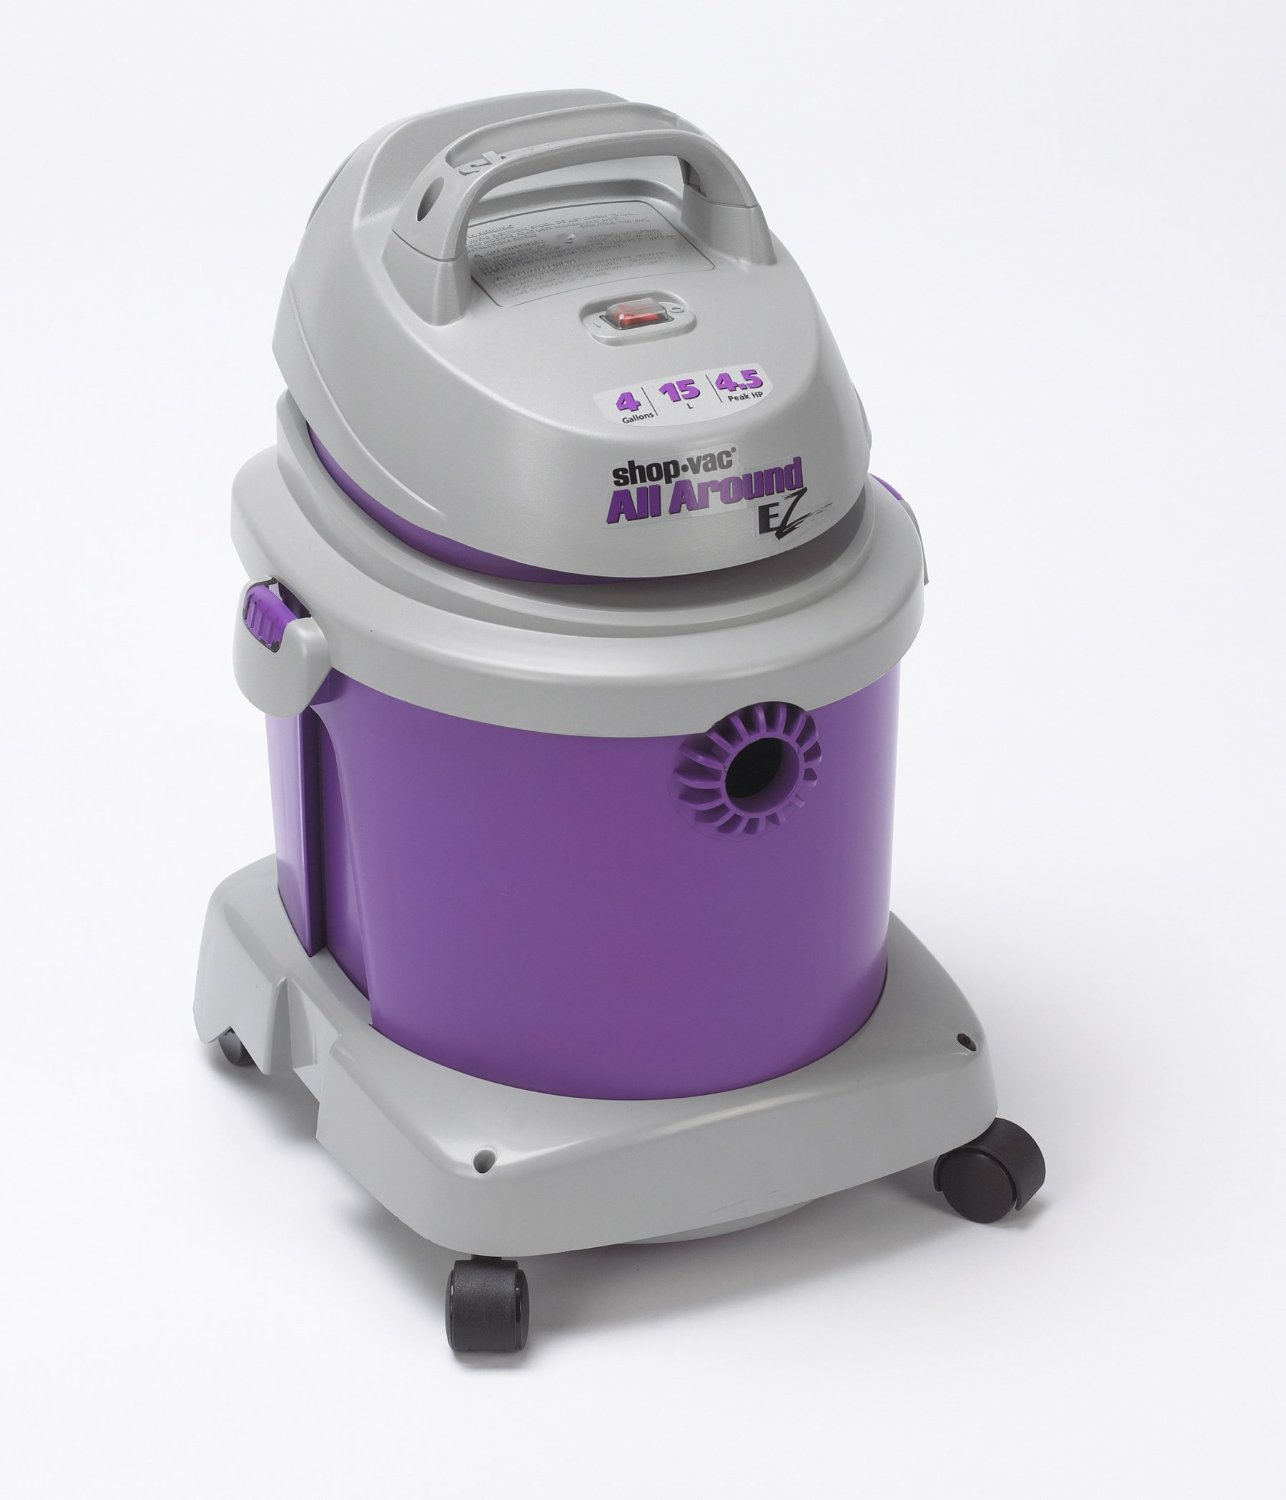 Shop Vac 5895400 Review The Basic Woodworking